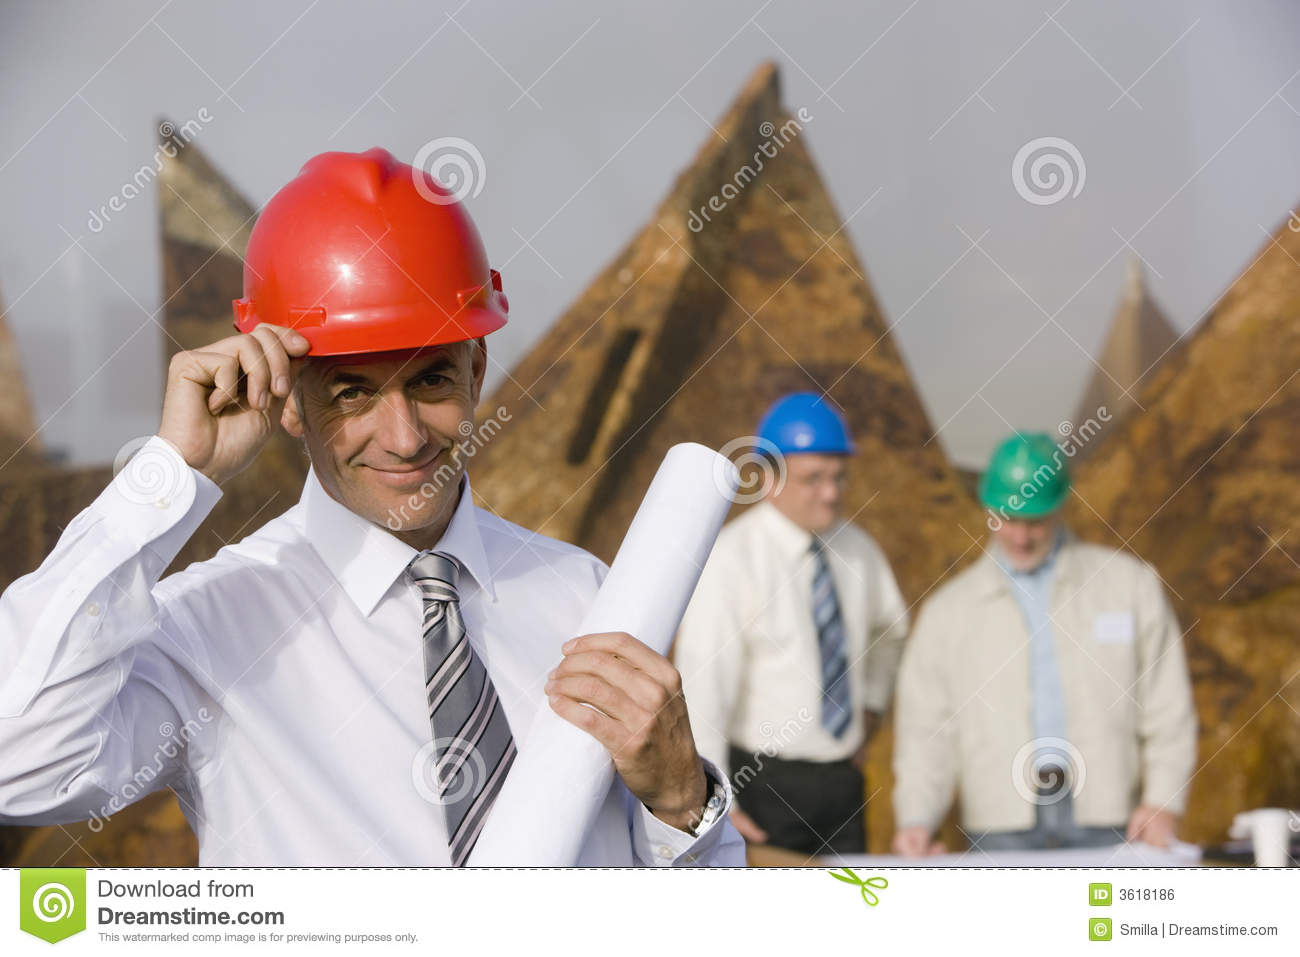 Engineer tipping his hardhat